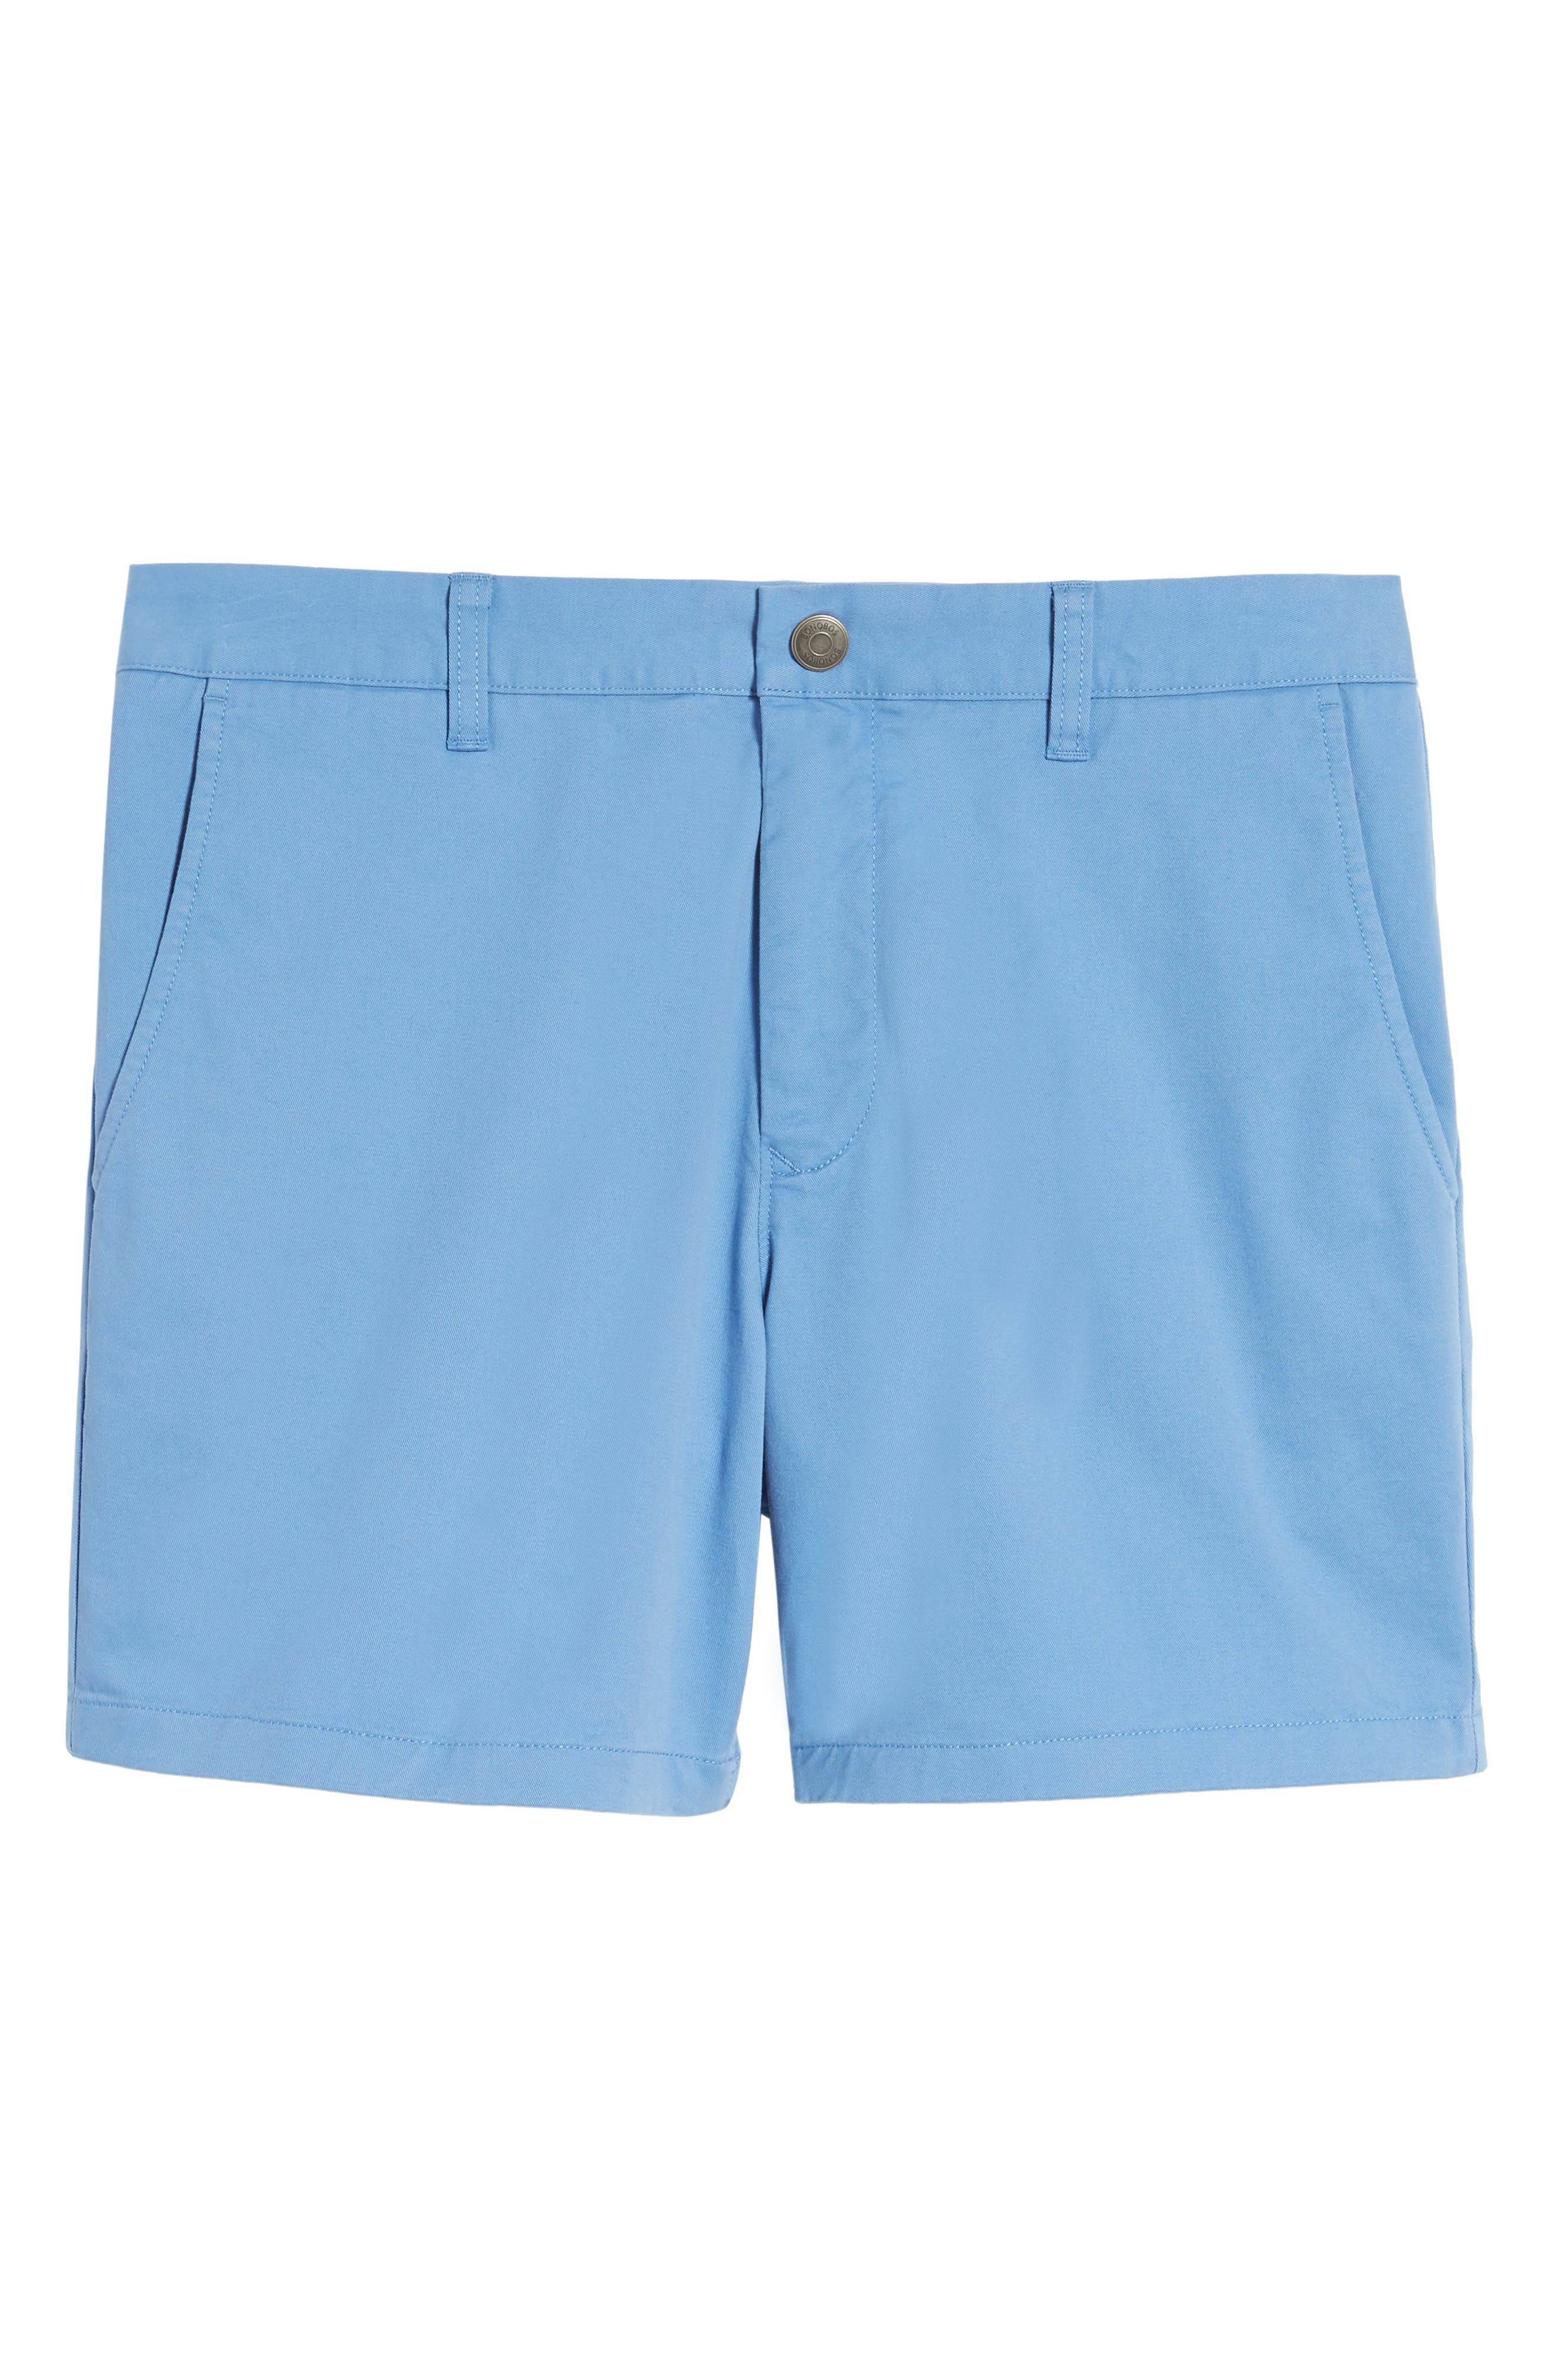 Stretch Washed Chino 5-Inch Shorts,                             Alternate thumbnail 149, color,